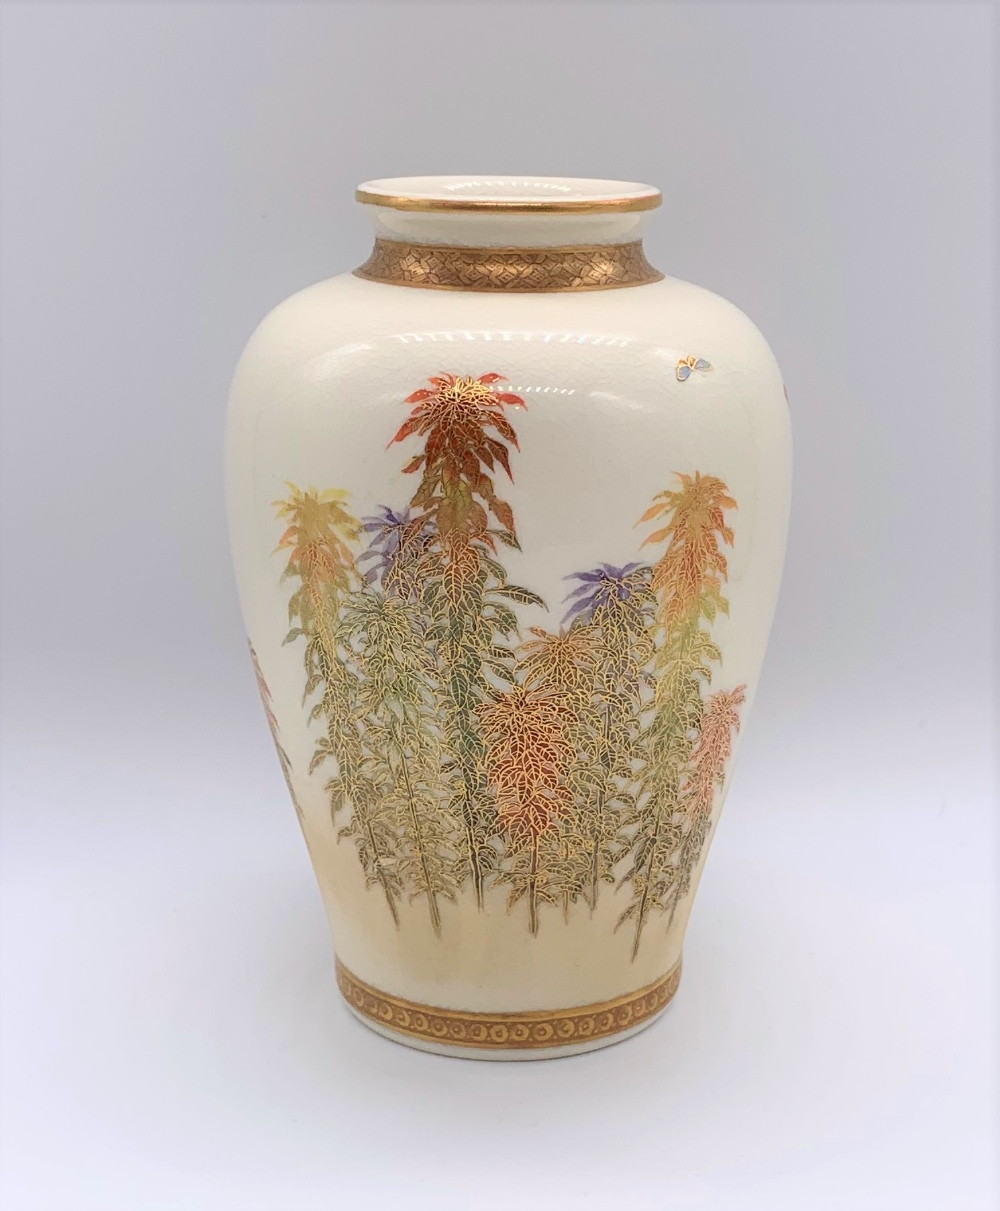 KINKOZAN; a Japanese Meiji period Satsuma vase of ovoid form decorated with butterflies above